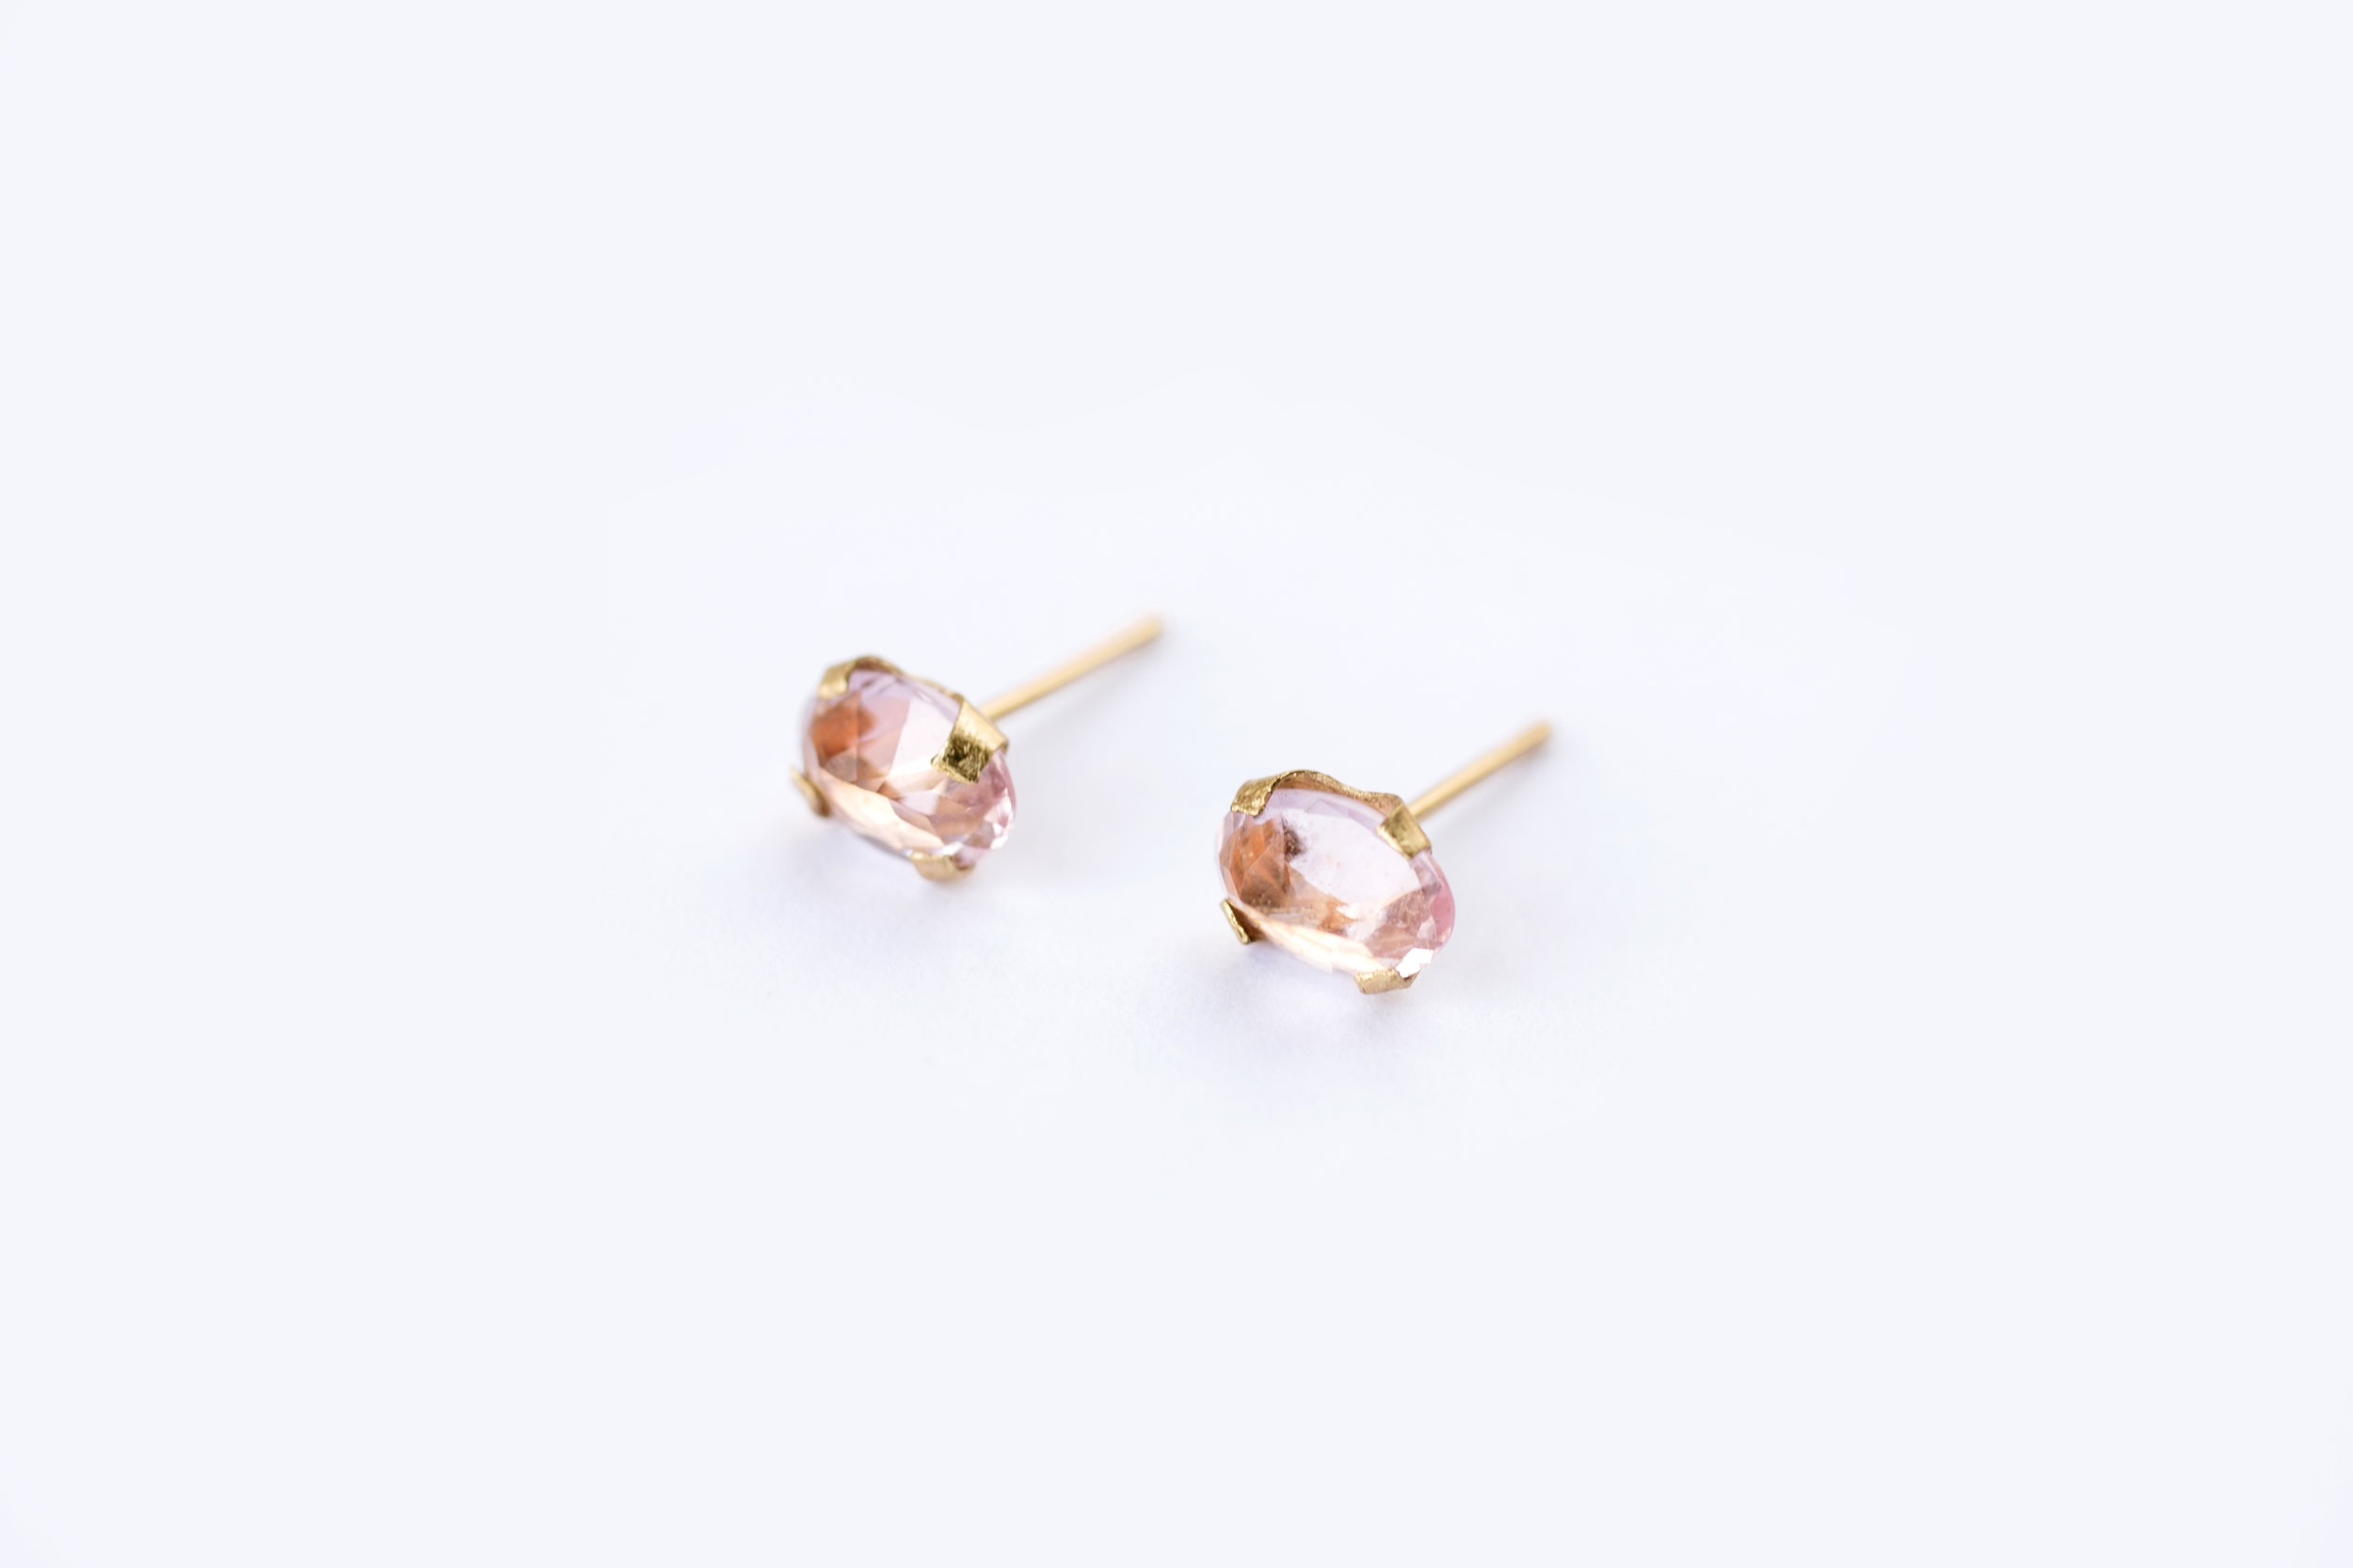 morganite stud earrings white gold with diamonds in